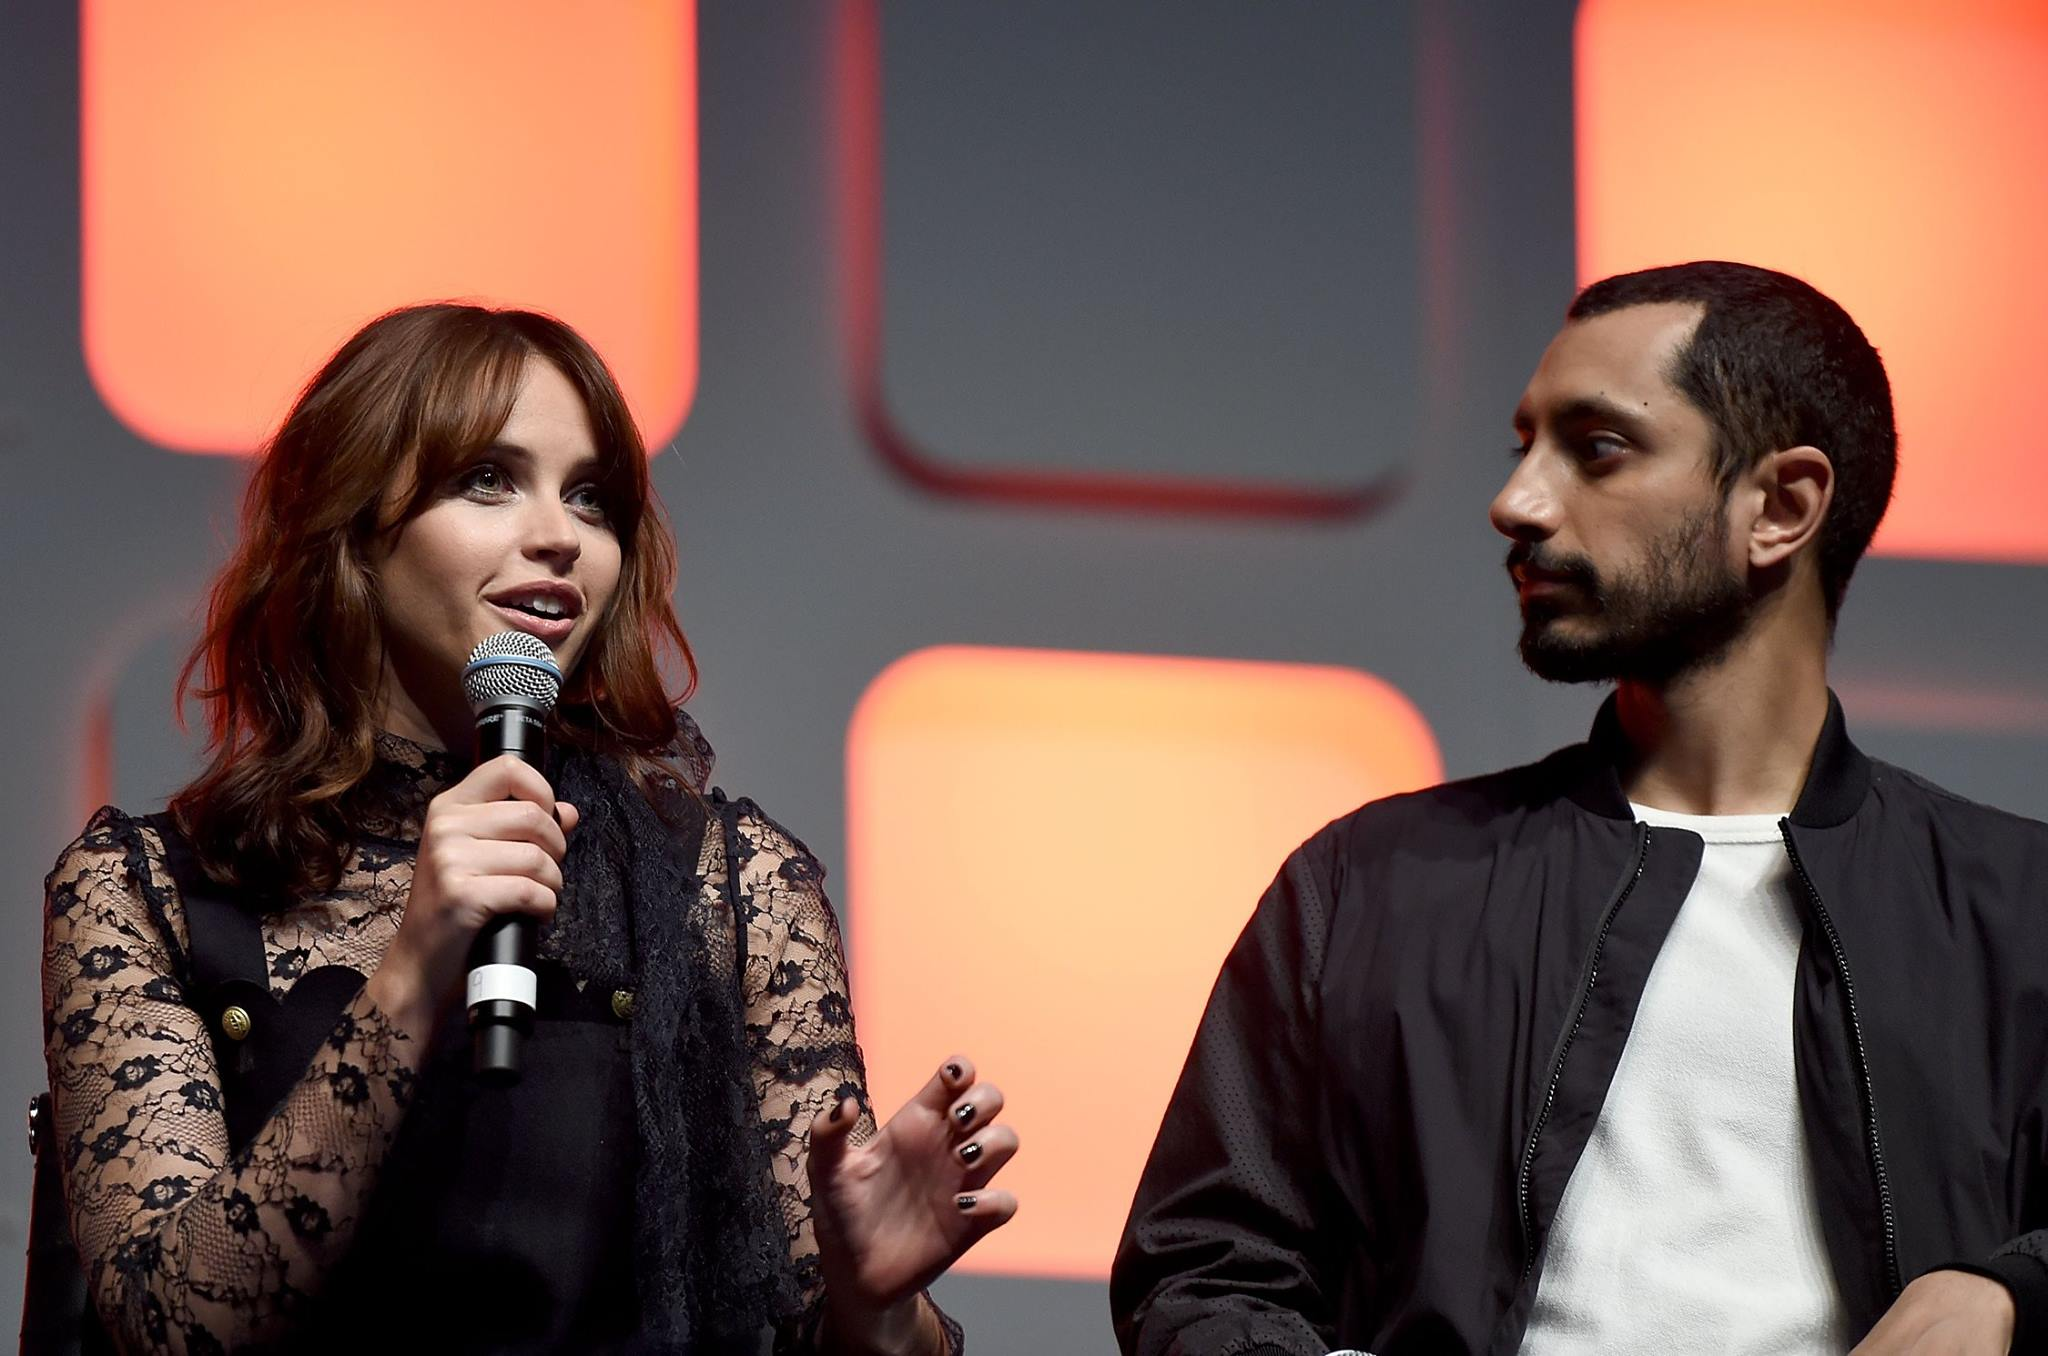 Rogue One Star Wars Celebration 4